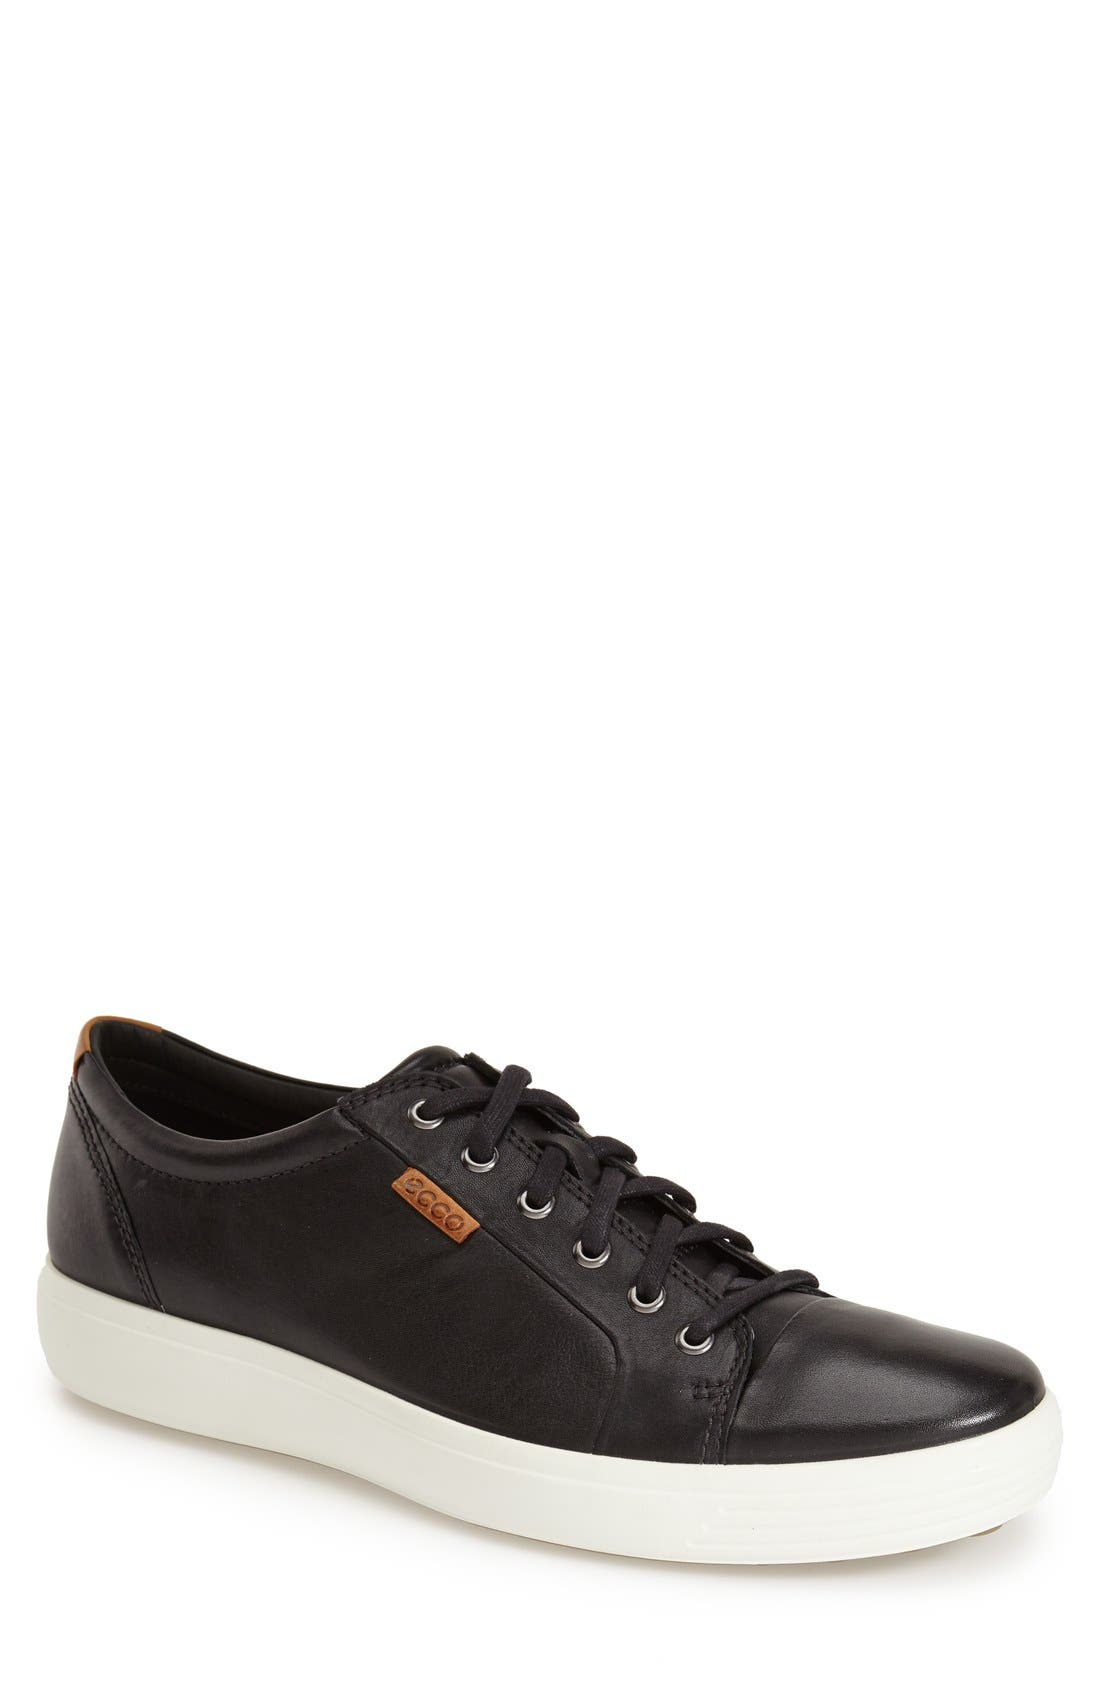 Soft VII Lace-Up Sneaker,                             Main thumbnail 12, color,